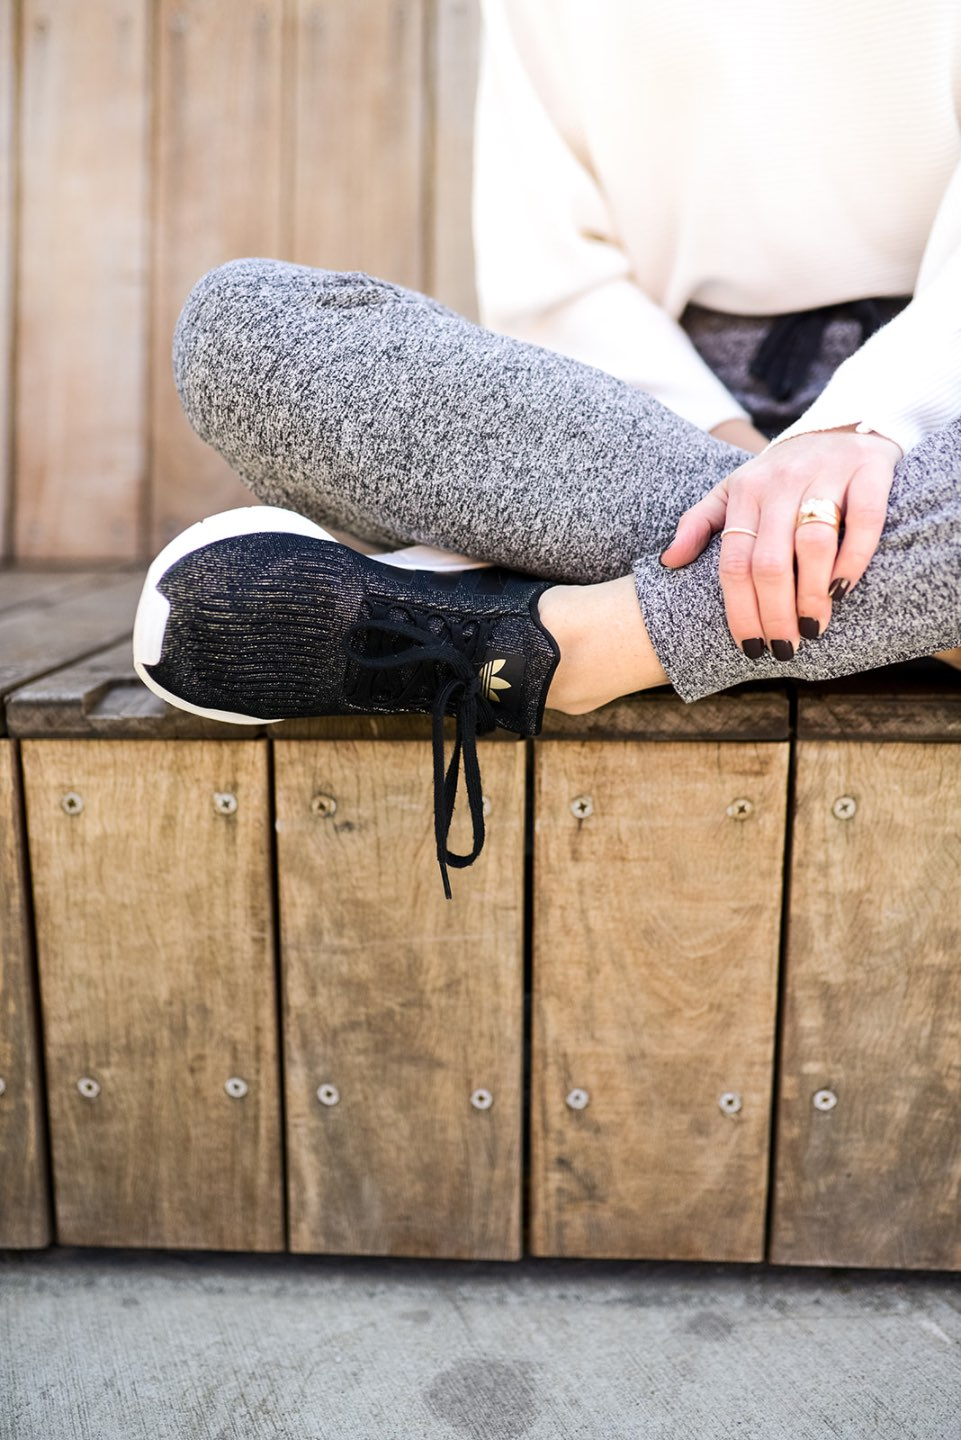 Most Popular Posts of 2020 - I'm Fixin' To - @imfixintoblog |Most Popular Posts by popular NC lifestyle blog, I'm Fixin' To: image of a woman wearing grey jogger pants and black Adidas shoes.